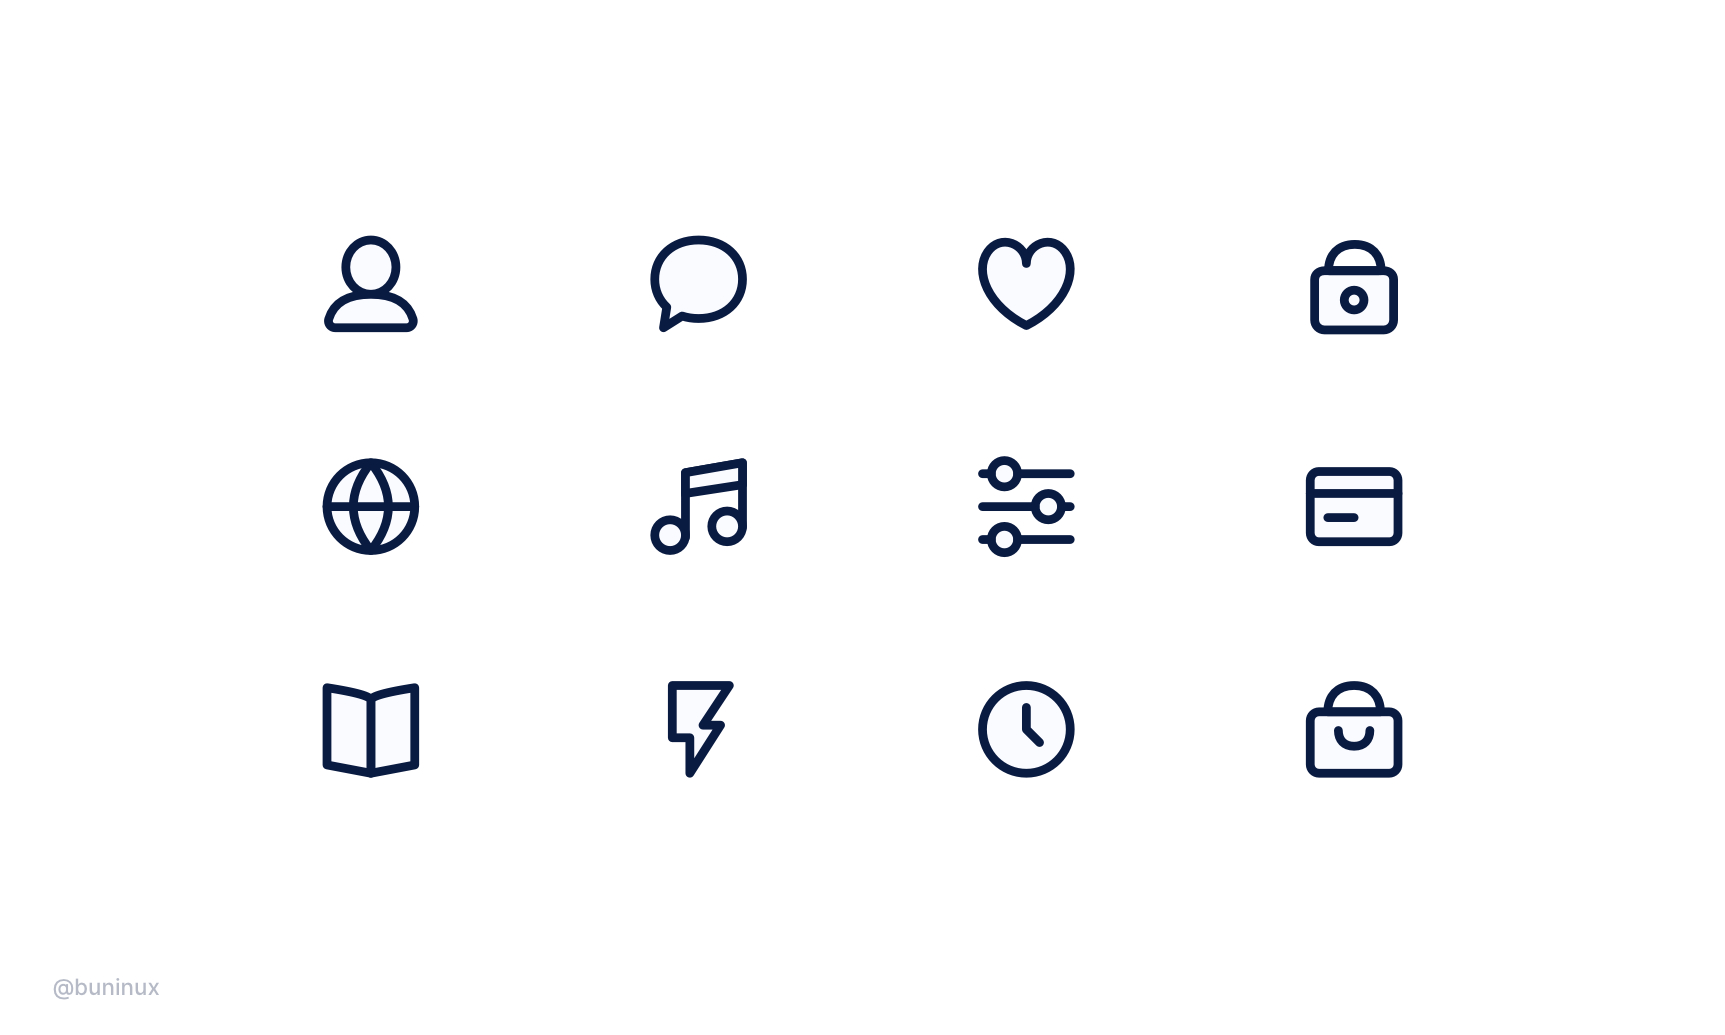 Consistent icons